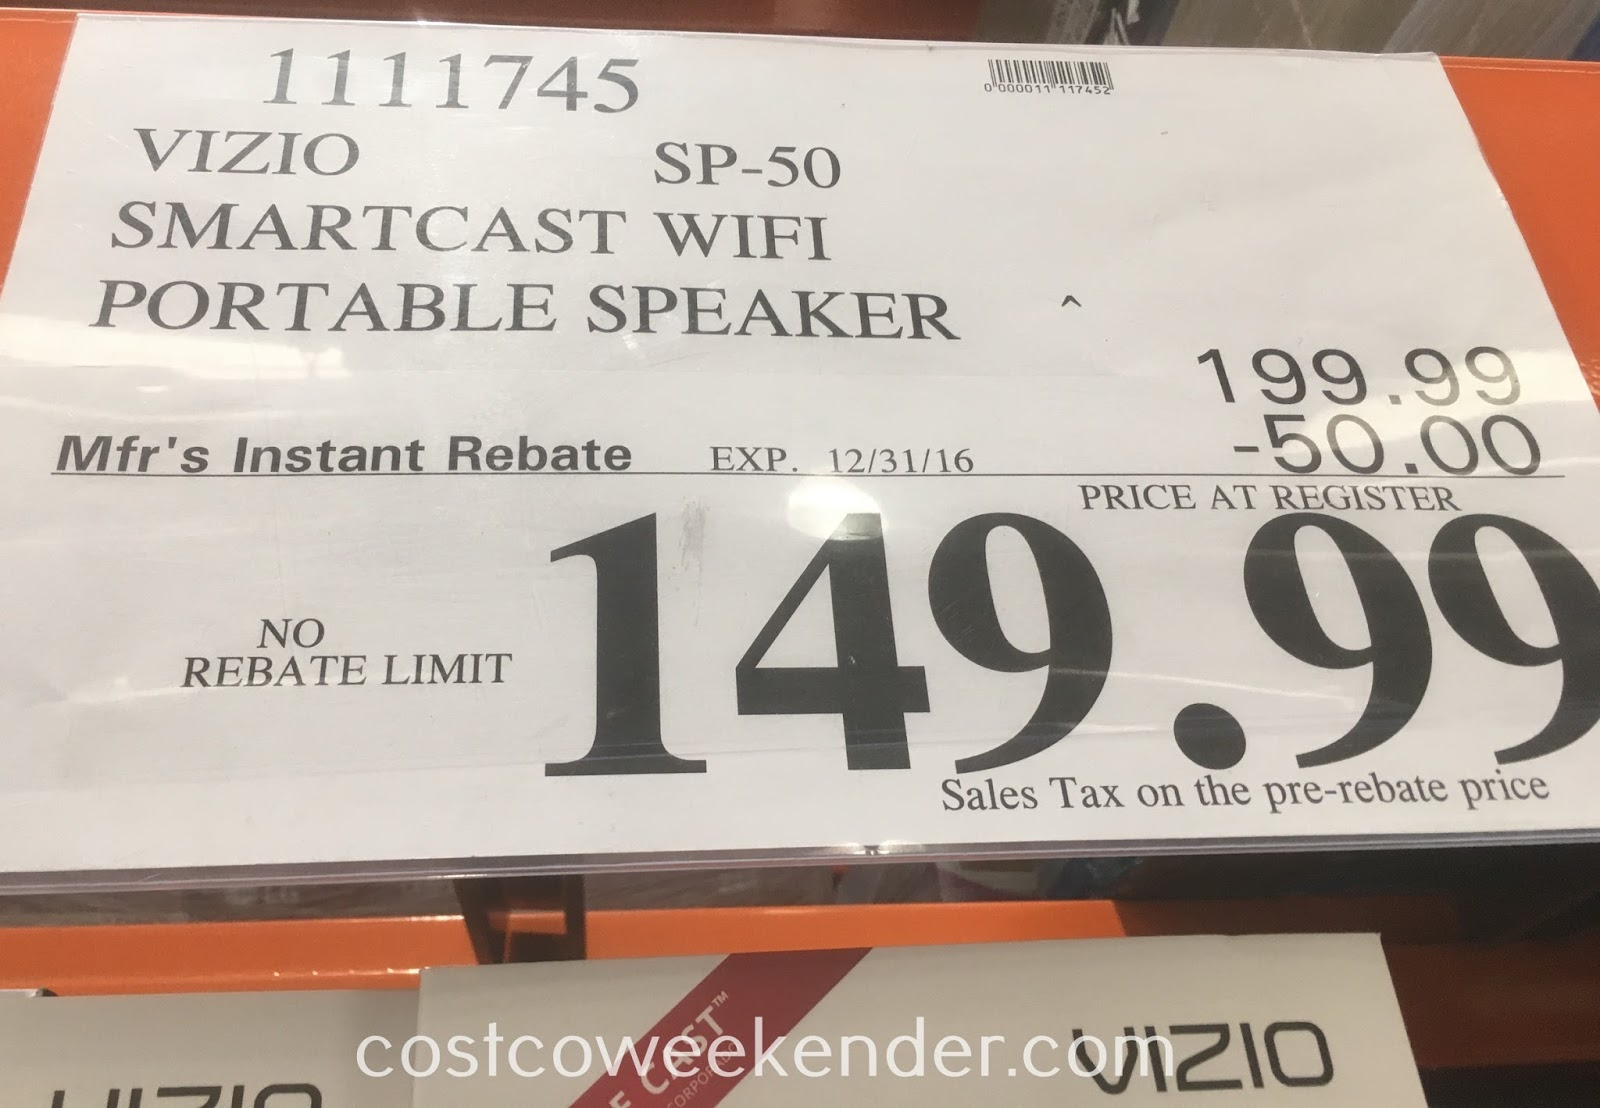 Deal for the Vizio Smartcast Wifi Portable Speaker (SP-50) at Costco